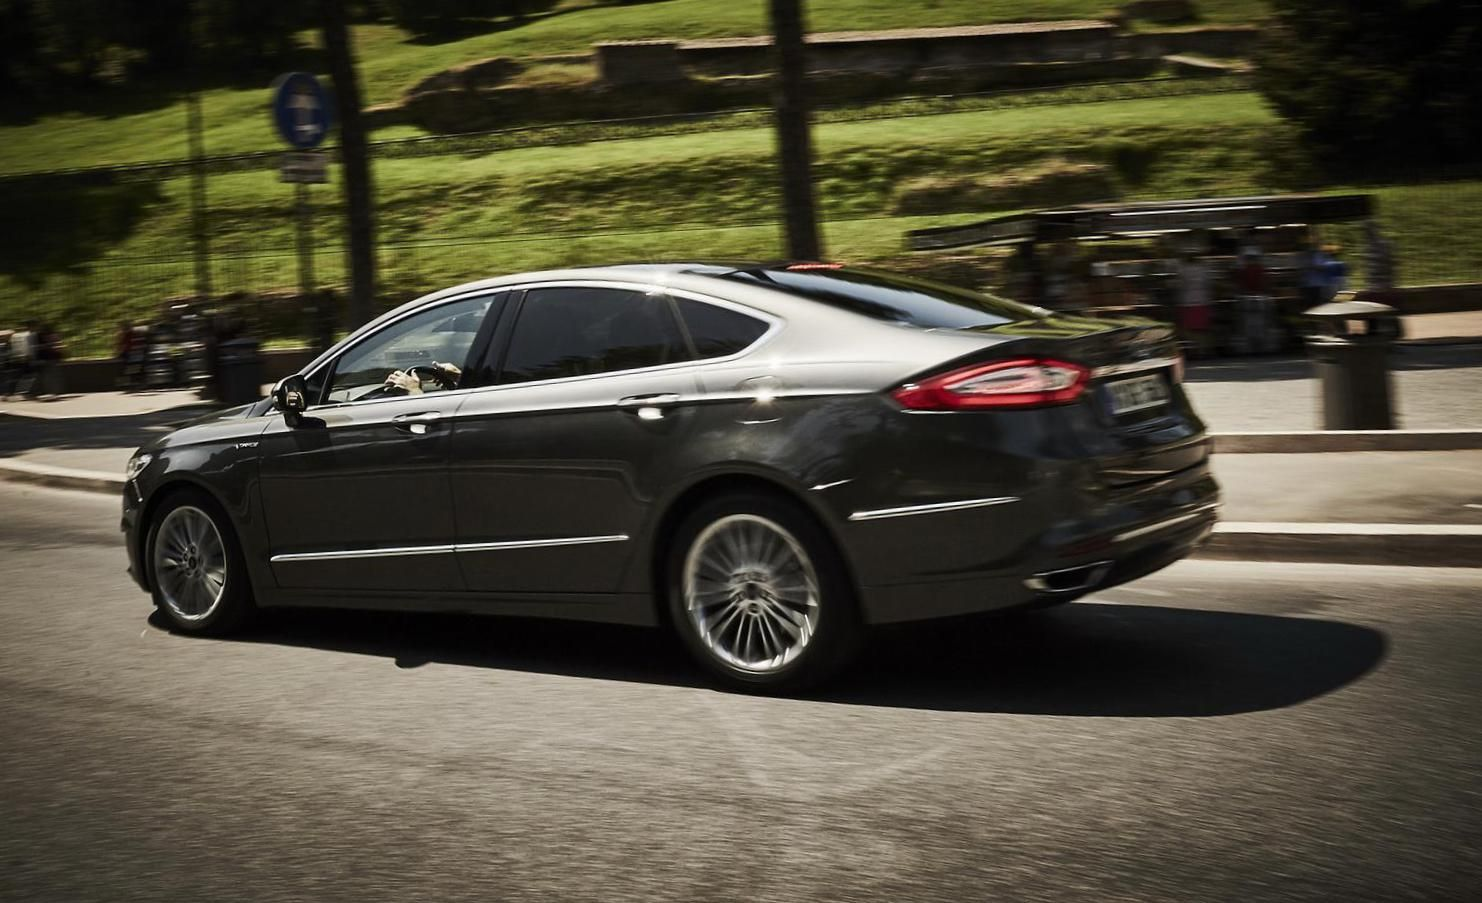 Ford Mondeo Vignale Sedan Photos And Specs Photo Mondeo Vignale